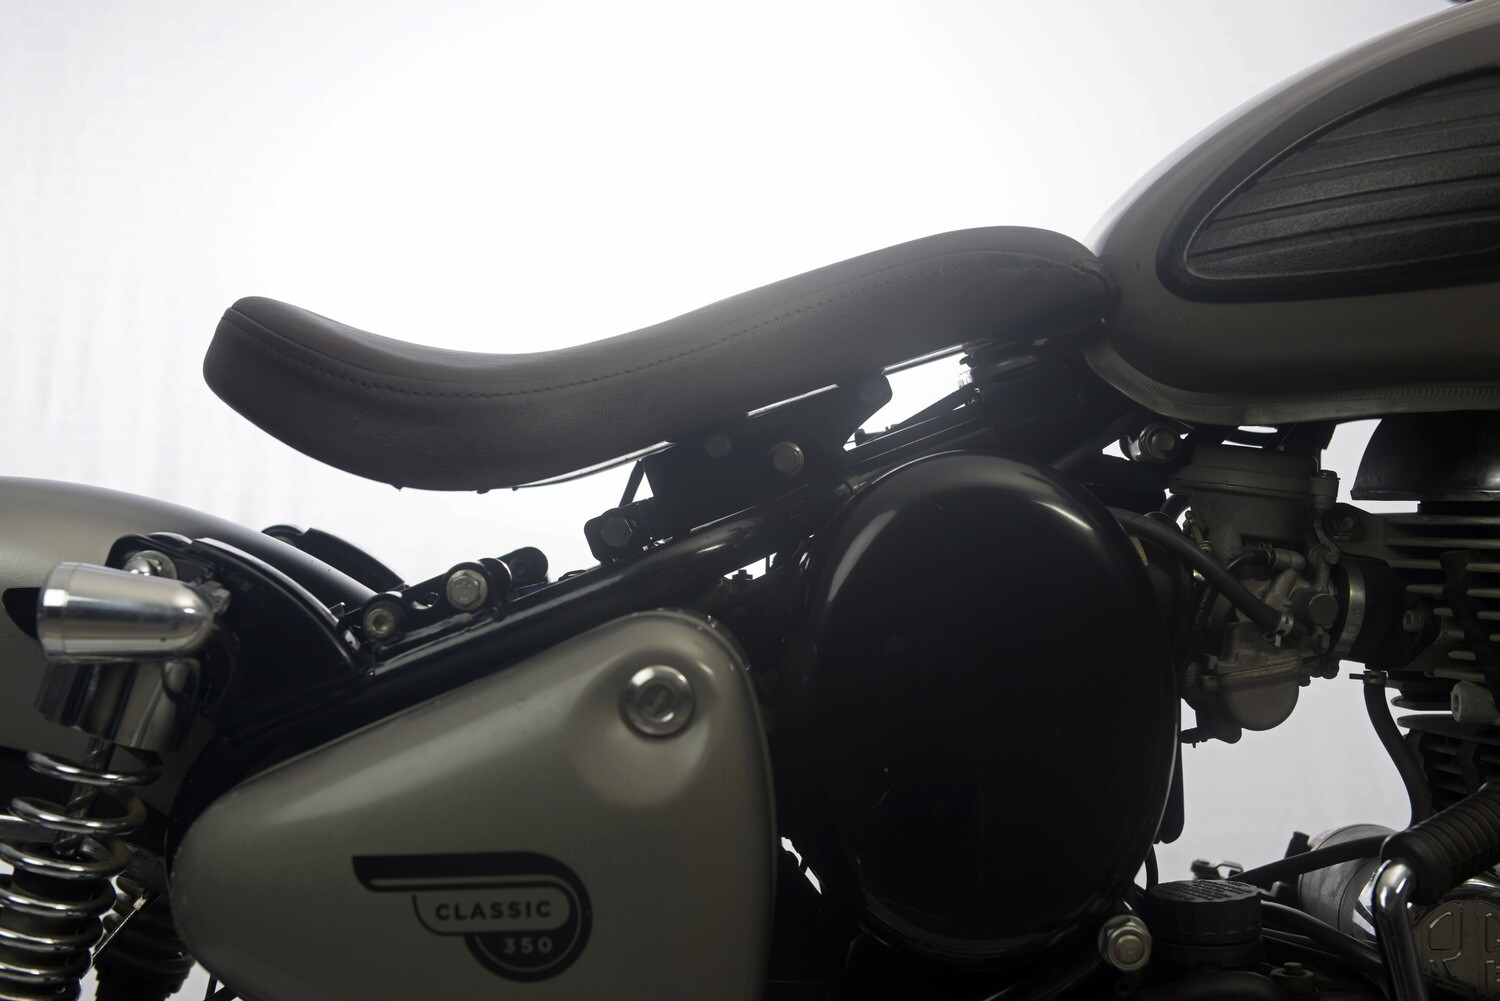 Adjustable Bobber Seat - Suitable with Stock Pillion Seat for Classics/Electra/Standard